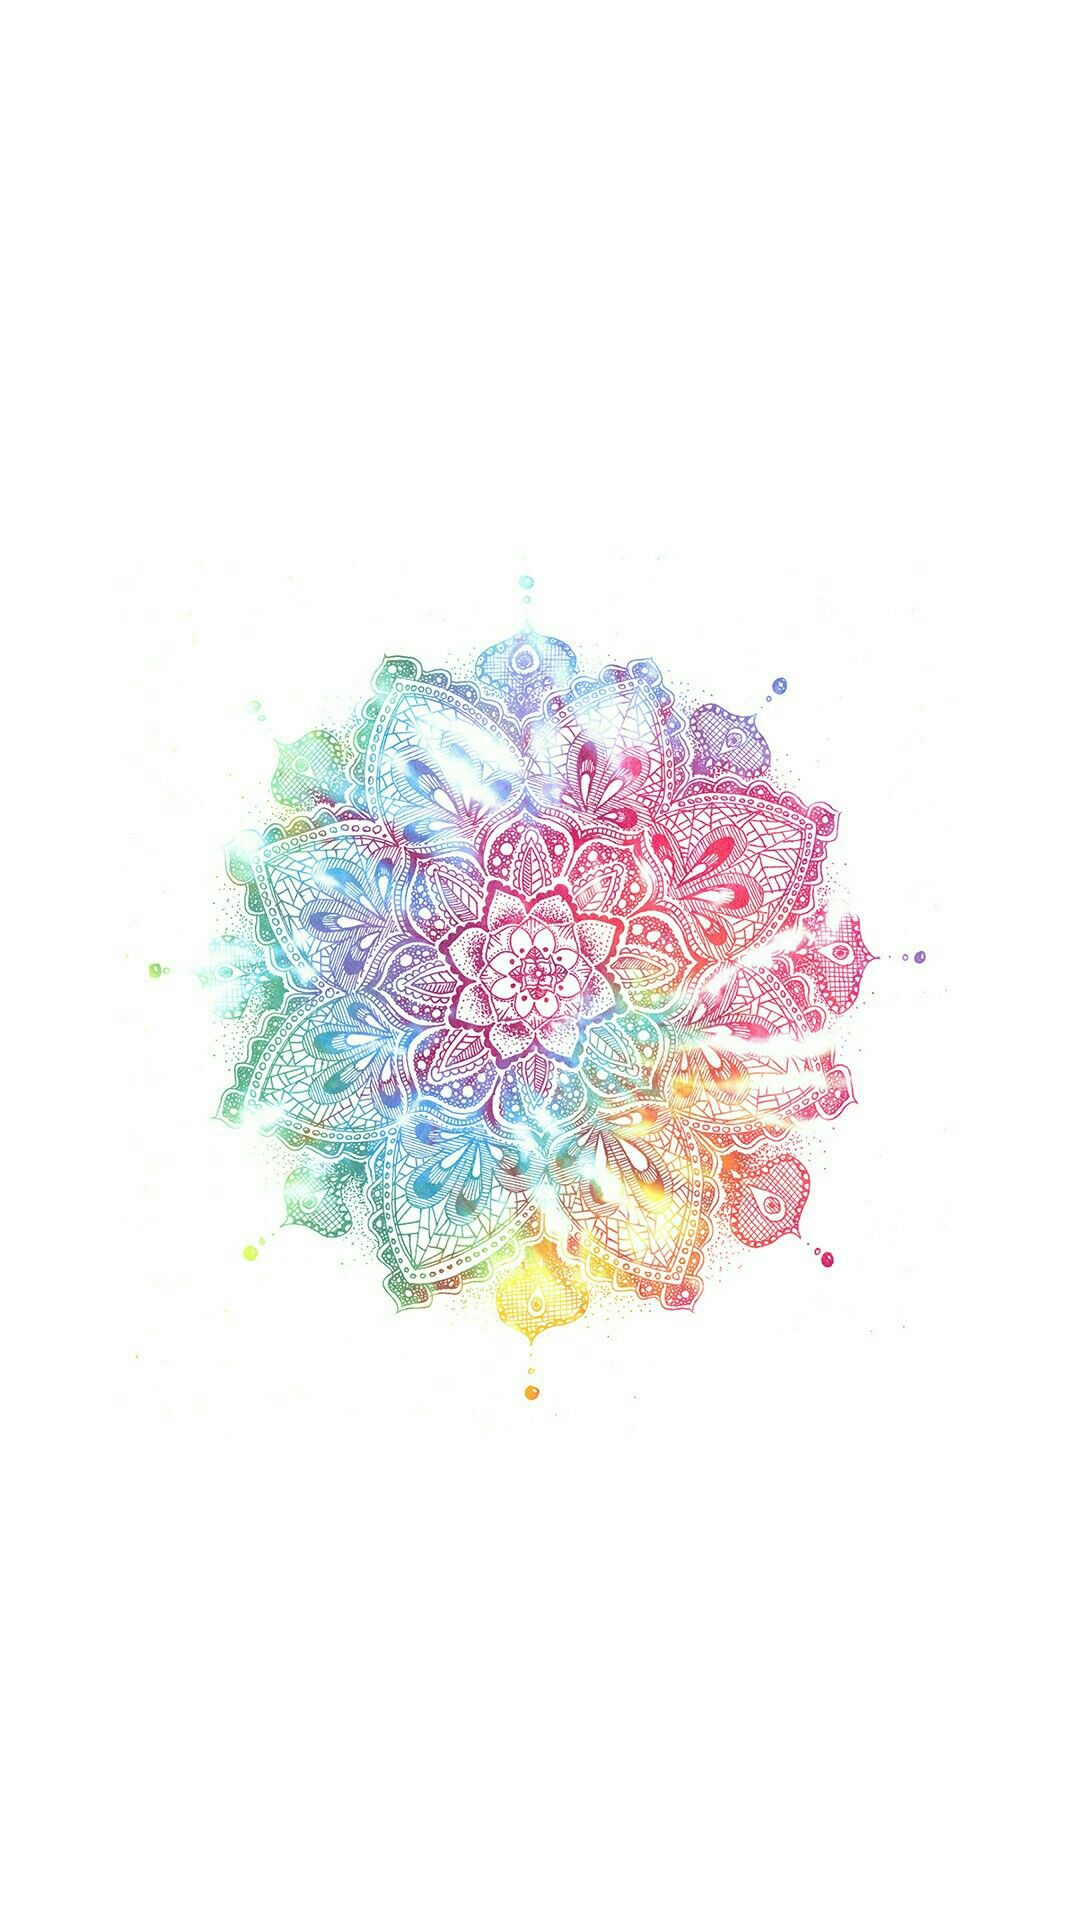 Mandala Wallpaper Lockscreen Colorido Wallpapers Pinterest